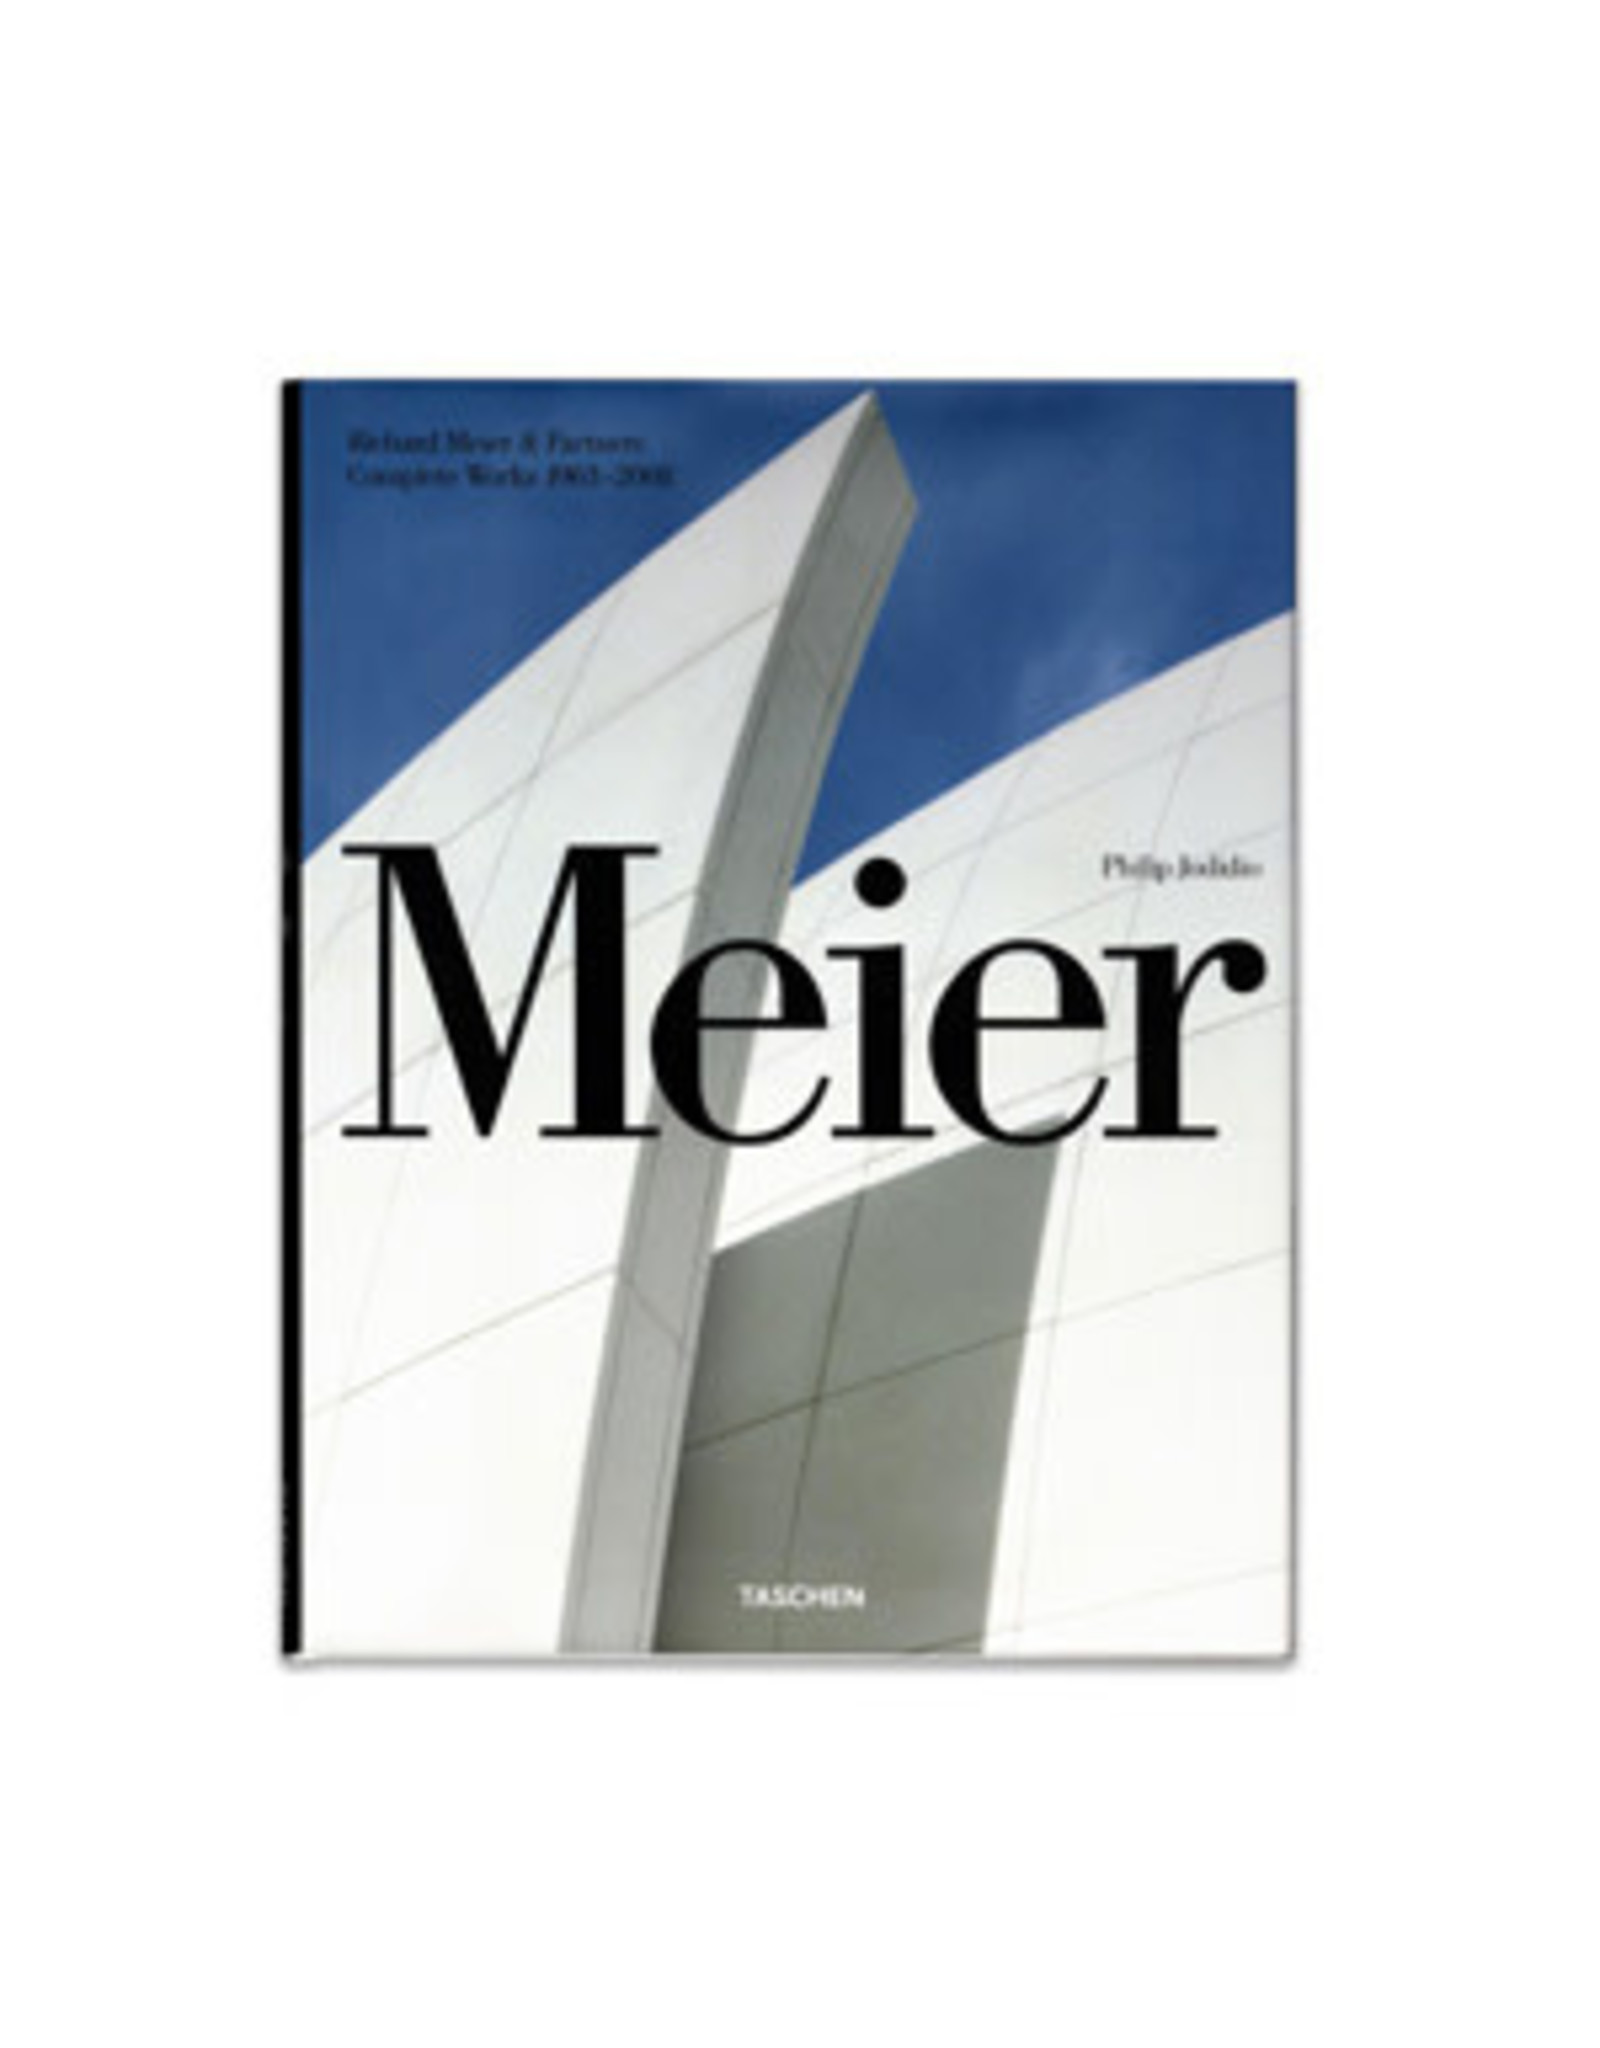 Richard Meier and Partners, Complete Works 1963-2008